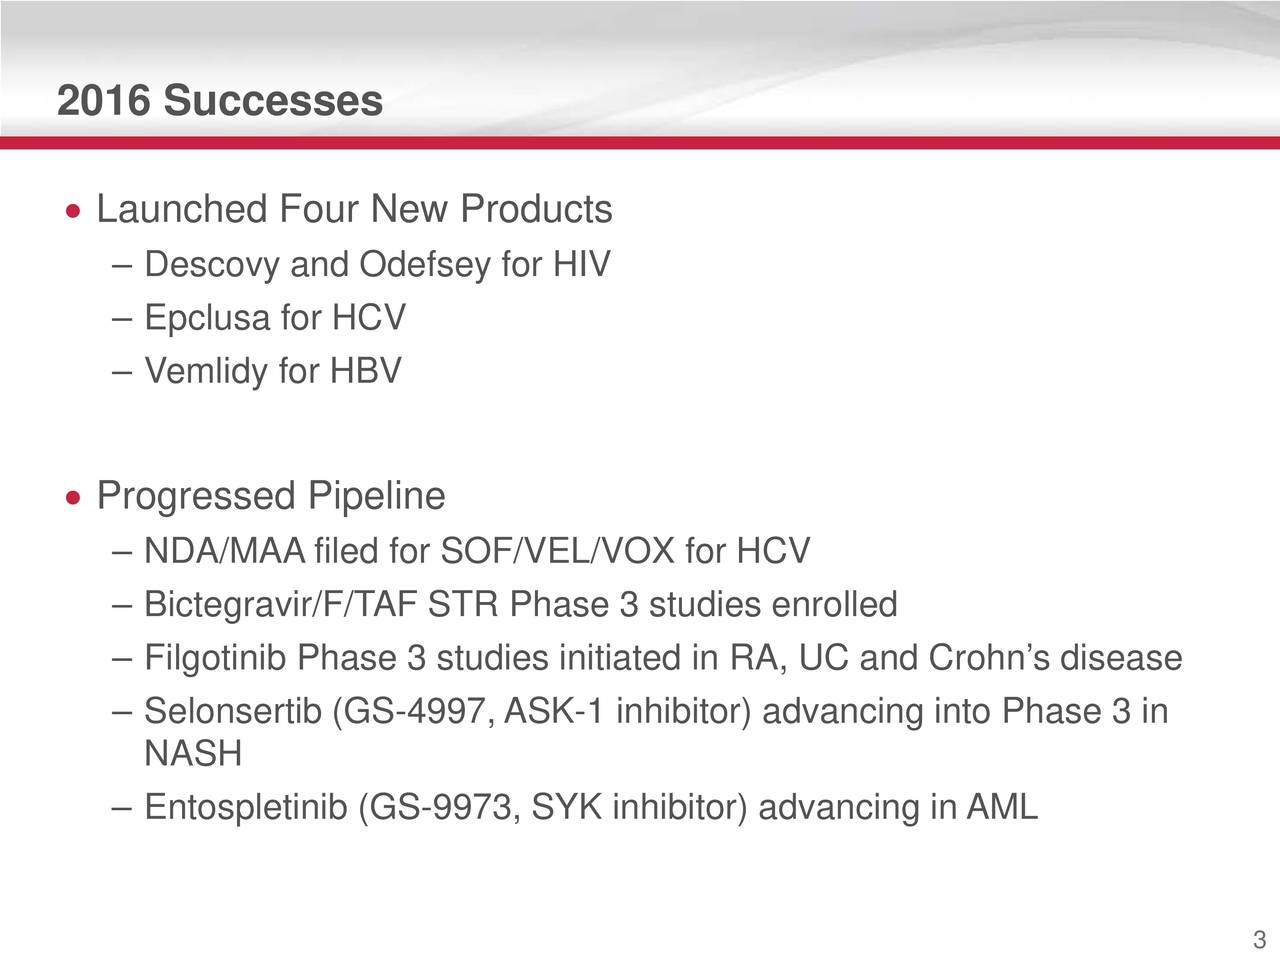 Launched Four New Products Descovy and Odefsey for HIV Epclusa for HCV Vemlidy for HBV Progressed Pipeline NDA/MAA filed for SOF/VEL/VOX for HCV Bictegravir/F/TAF STR Phase 3 studies enrolled Filgotinib Phase 3 studies initiated in RA, UC and Crohns disease Selonsertib (GS-4997, ASK-1 inhibitor) advancing into Phase 3 in NASH Entospletinib (GS-9973, SYK inhibitor) advancing in AML